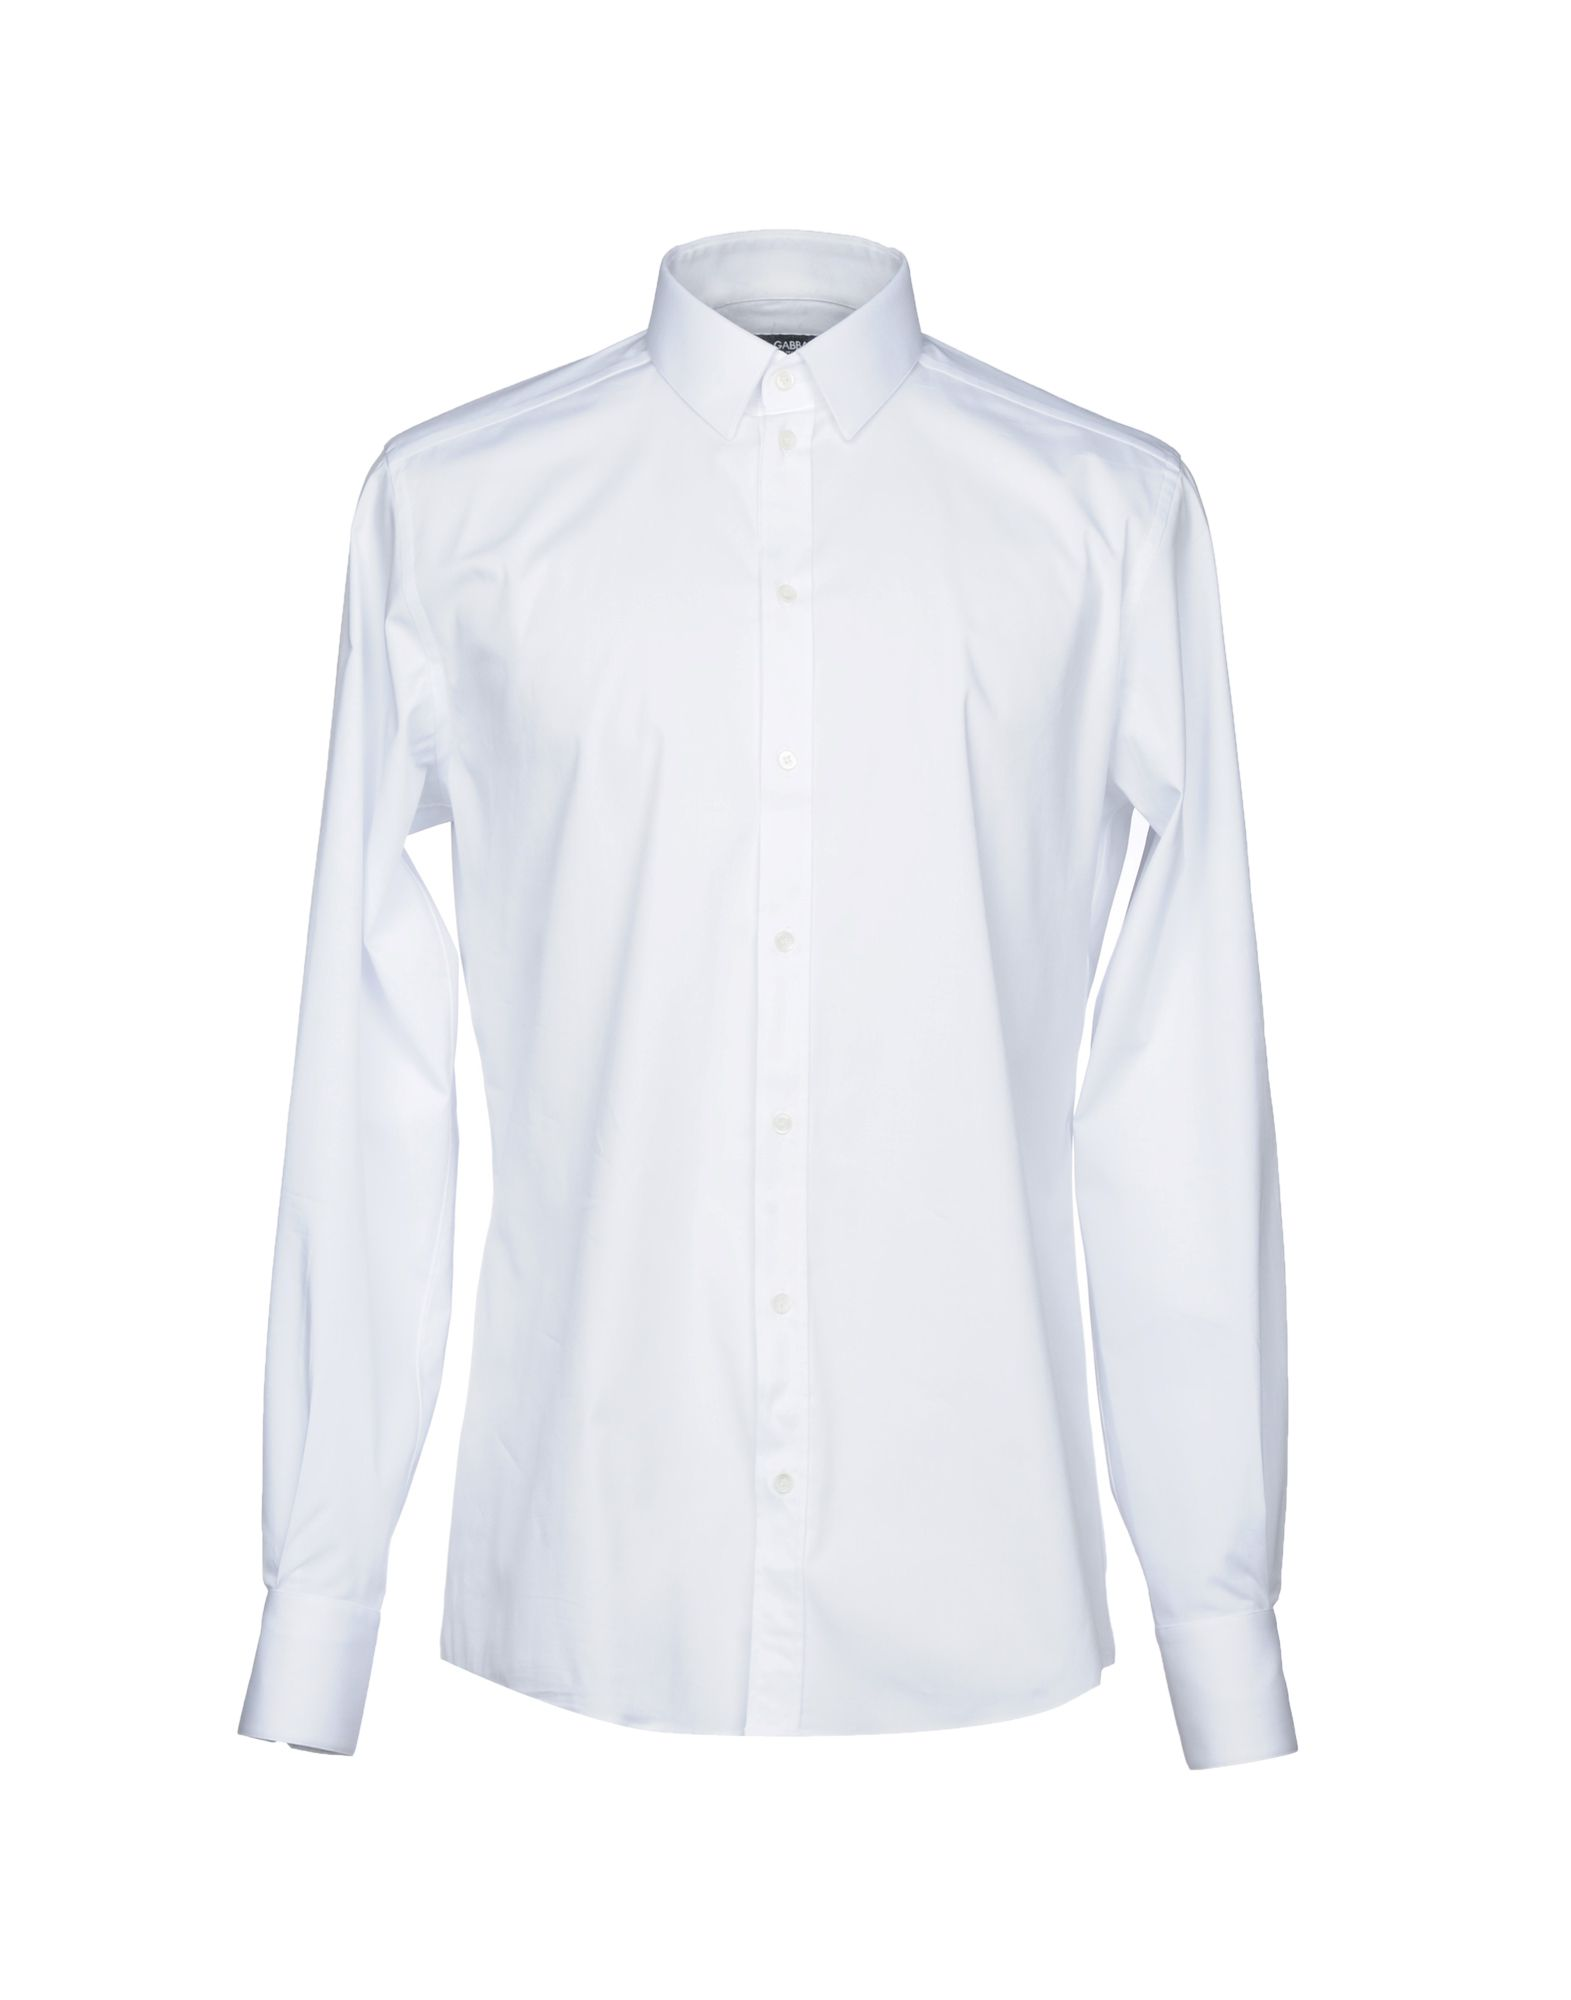 Dolce & Gabbana  Solid color shirt